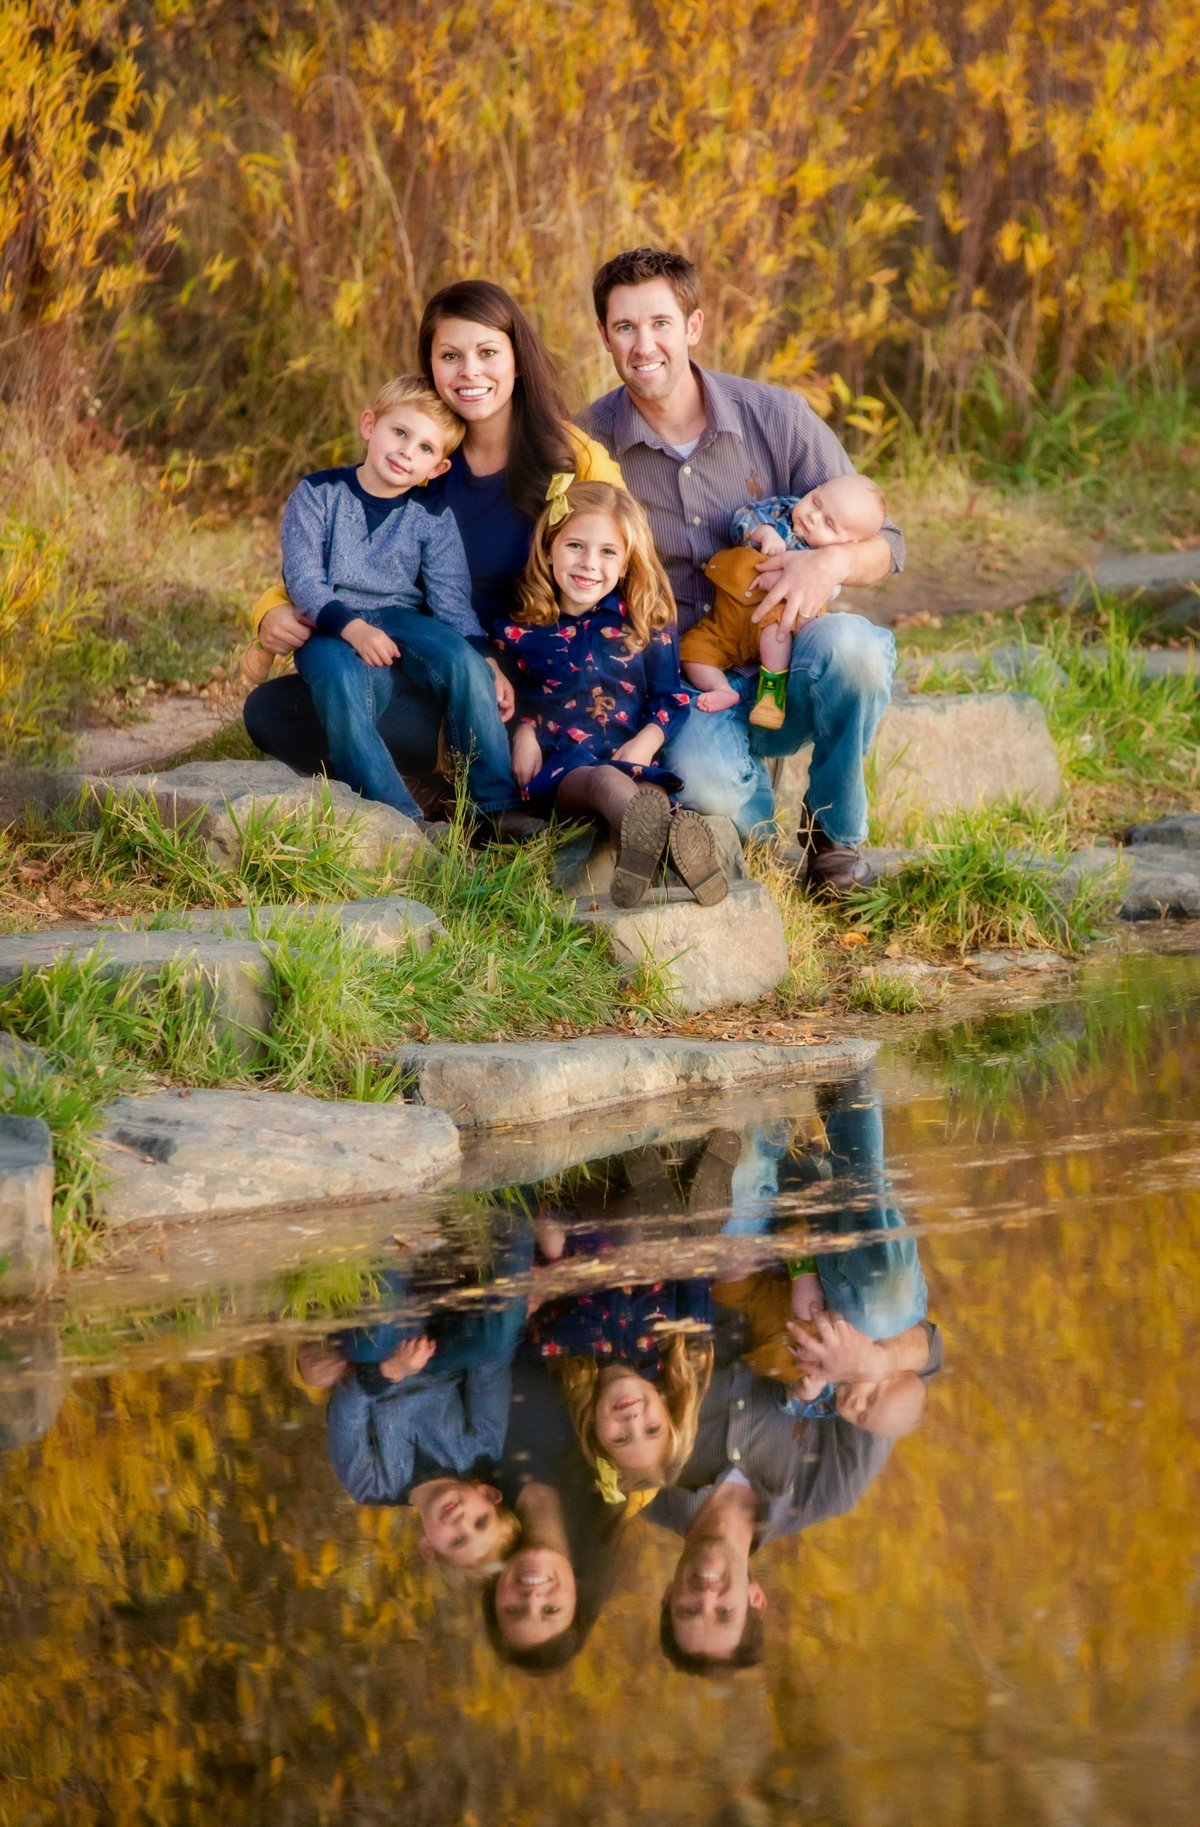 A reflection picture of a family sitting together next to the Laramie River in the fall.